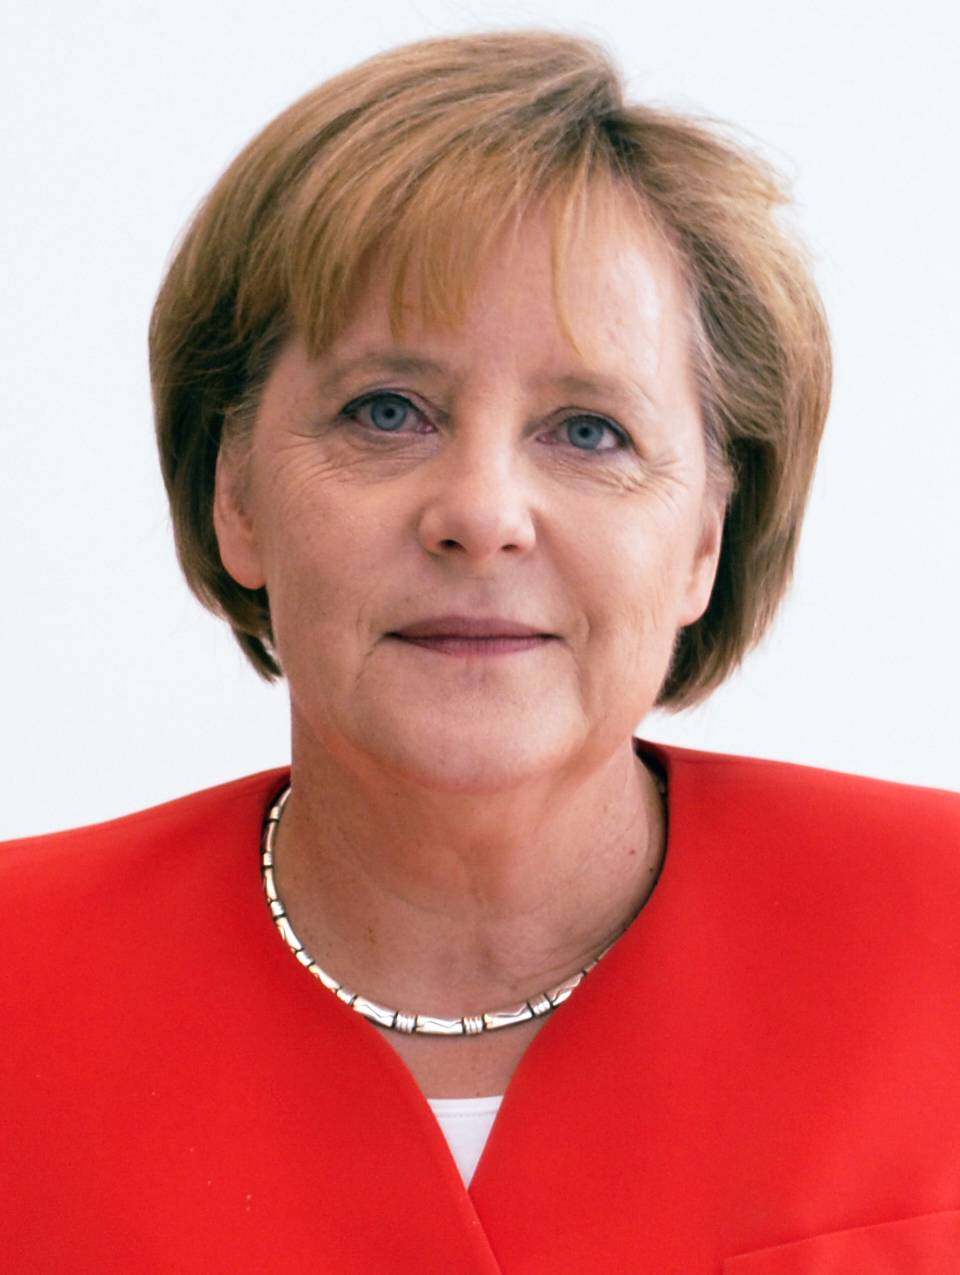 Pics Angela Merkel nudes (41 photo), Sexy, Cleavage, Feet, in bikini 2020